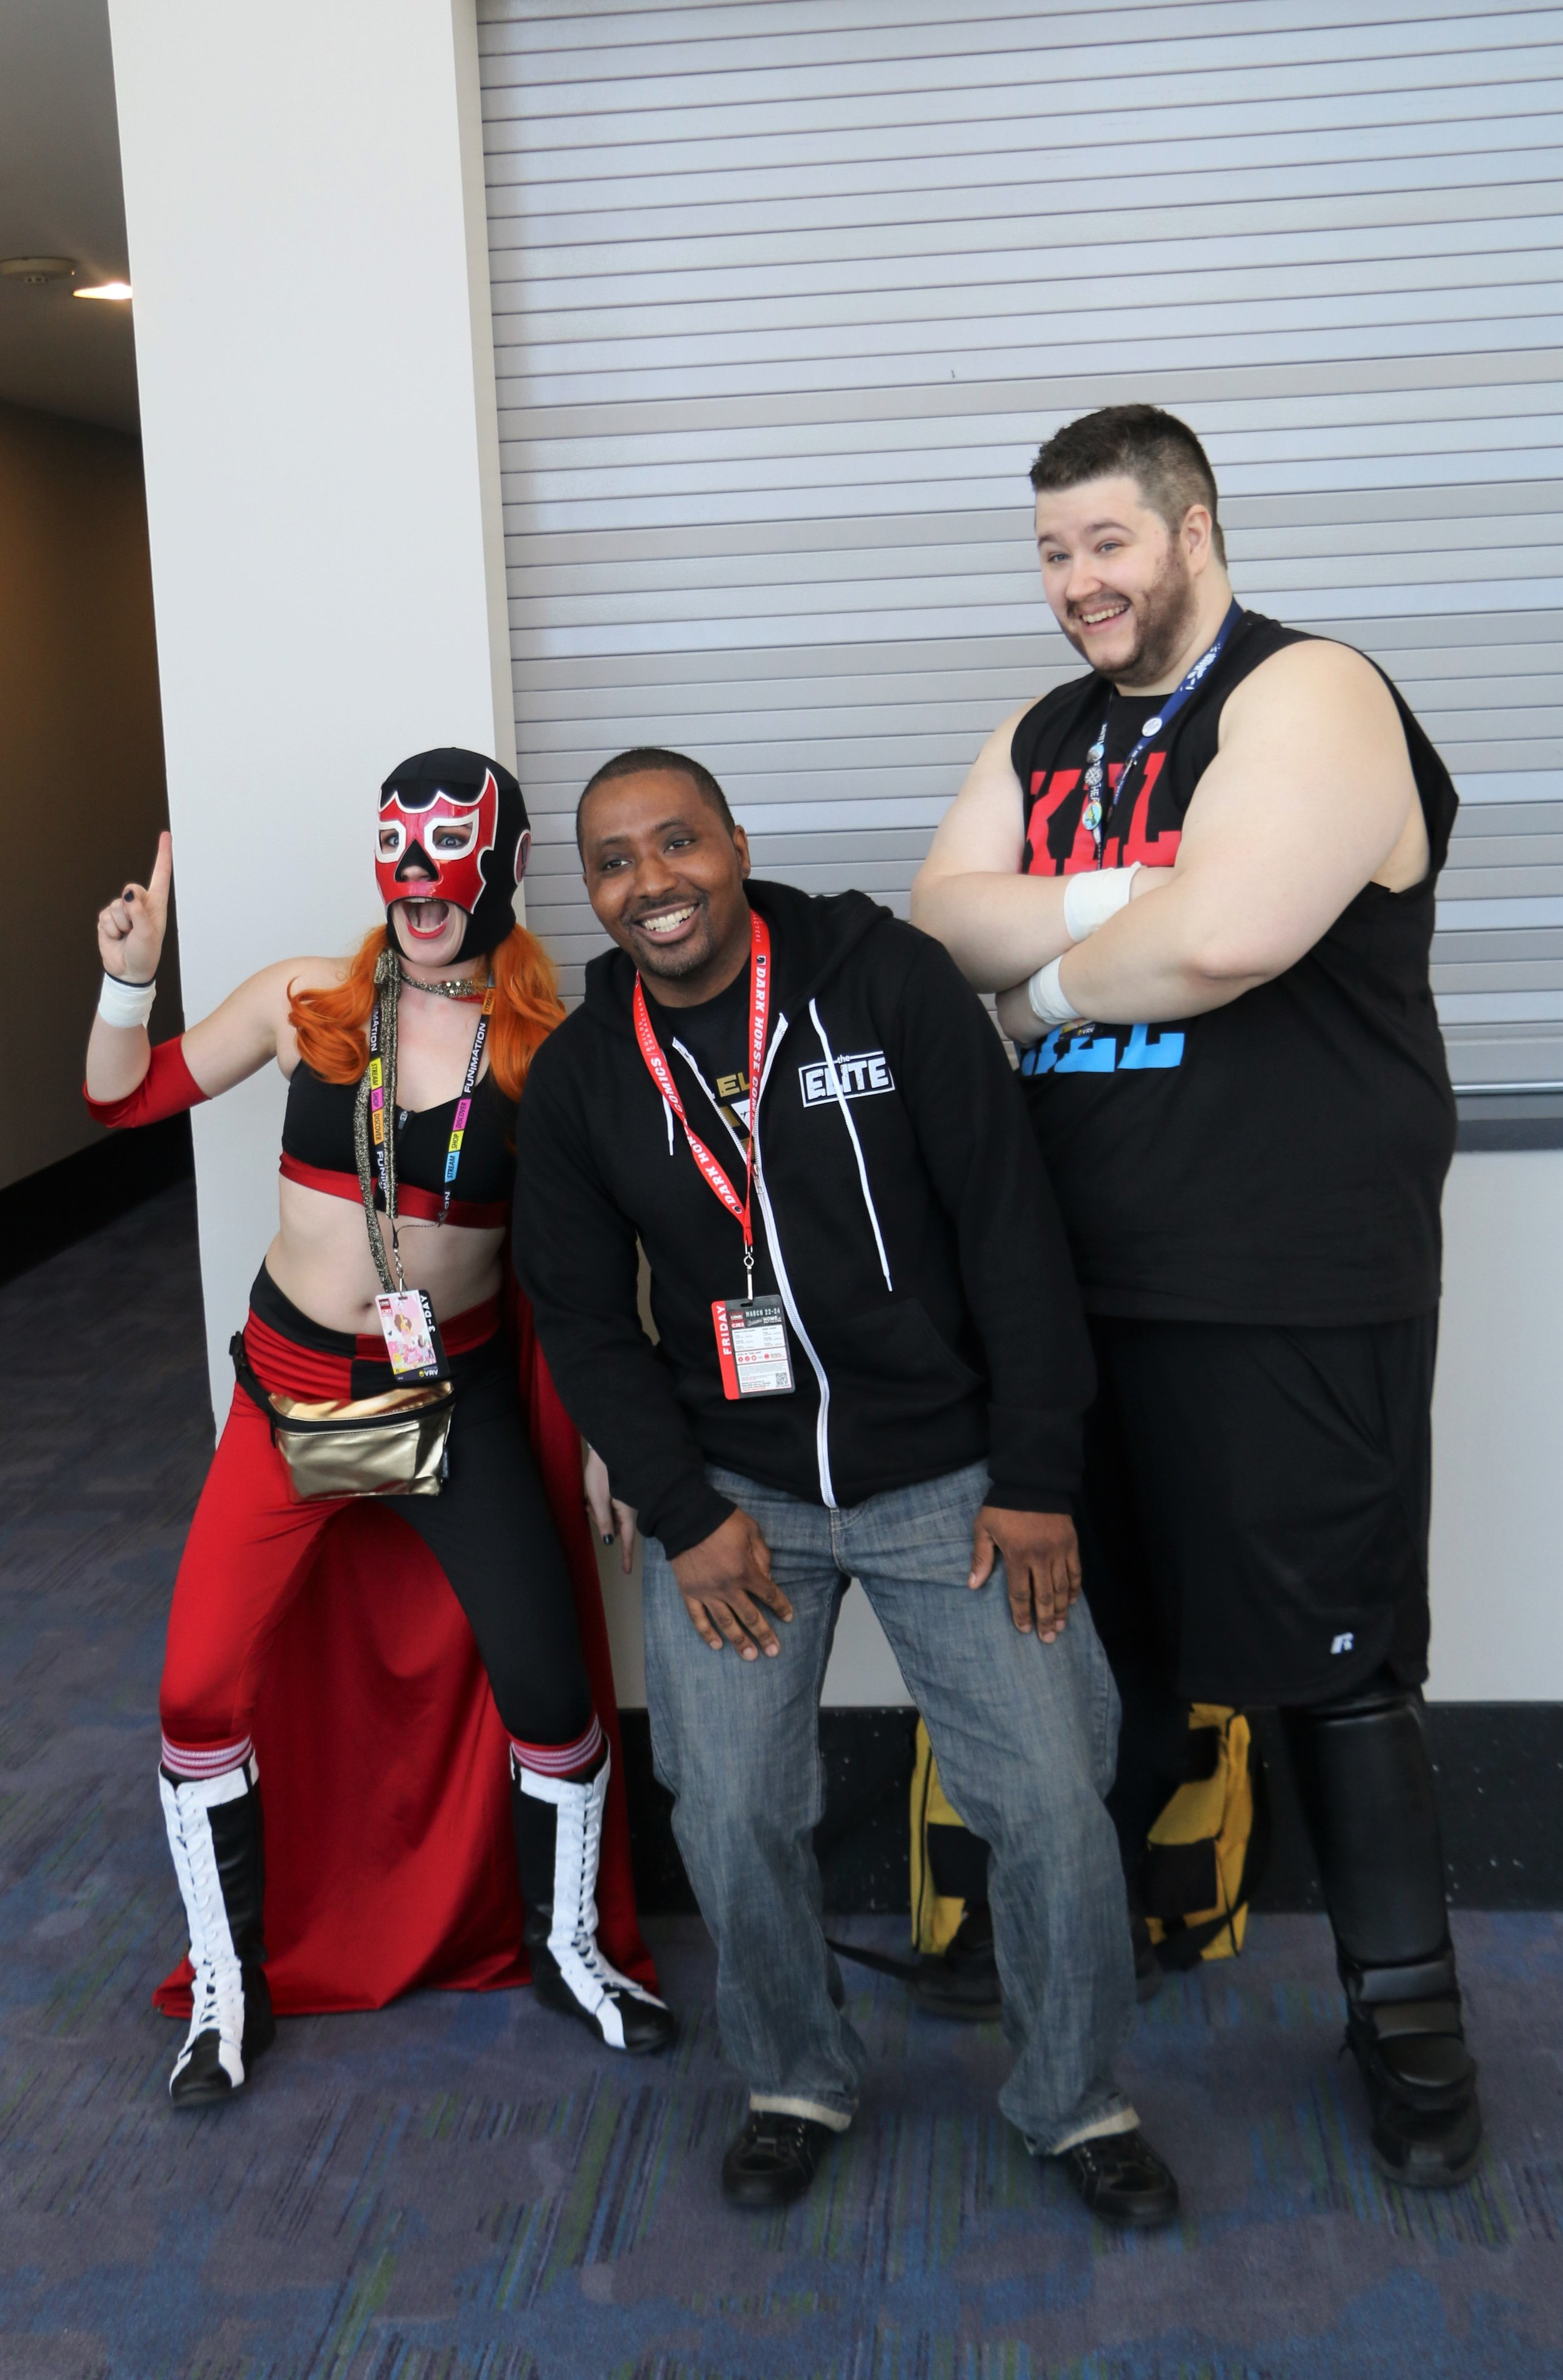 A fan poses with the El Generico and Kevin Steen cosplayers.